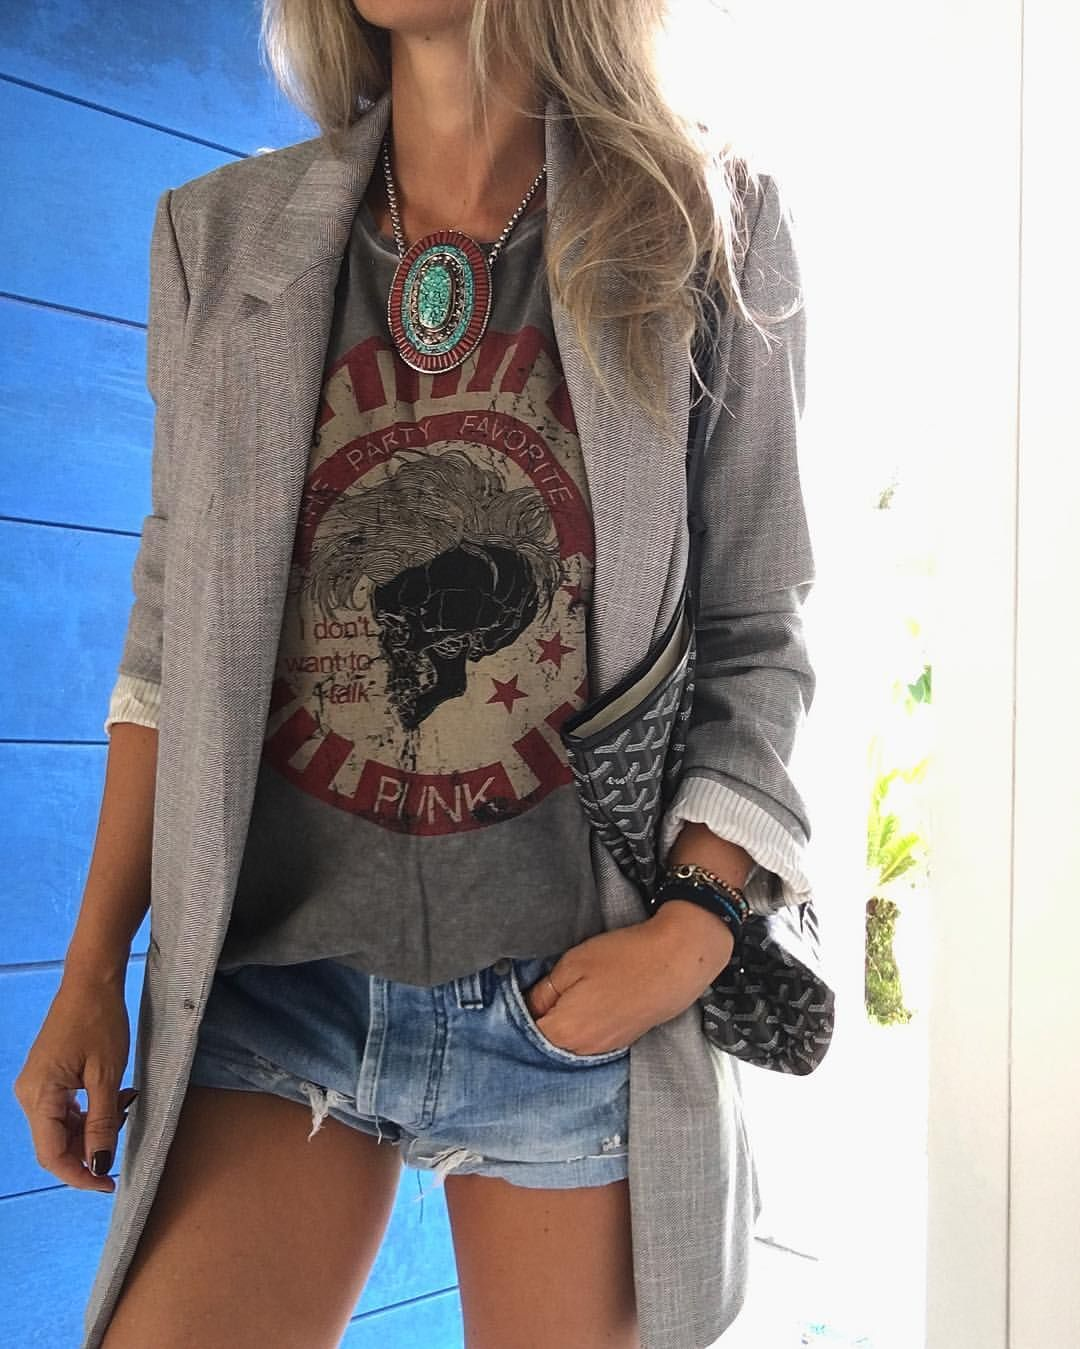 An oversized blazer matched with a vintage tee & denim short shorts, and a large turquoise statement necklace.